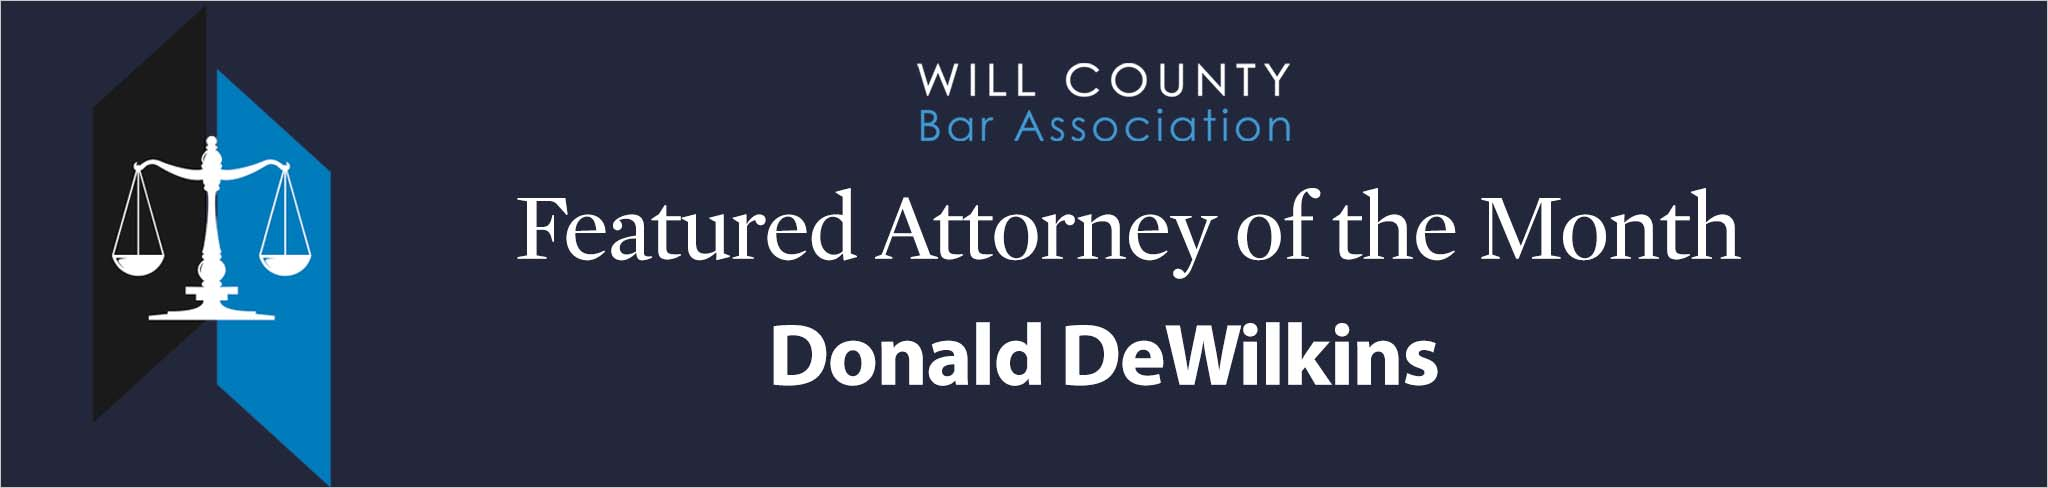 Feature Attorney of the Month Sept. 2021 Don DeWilkins